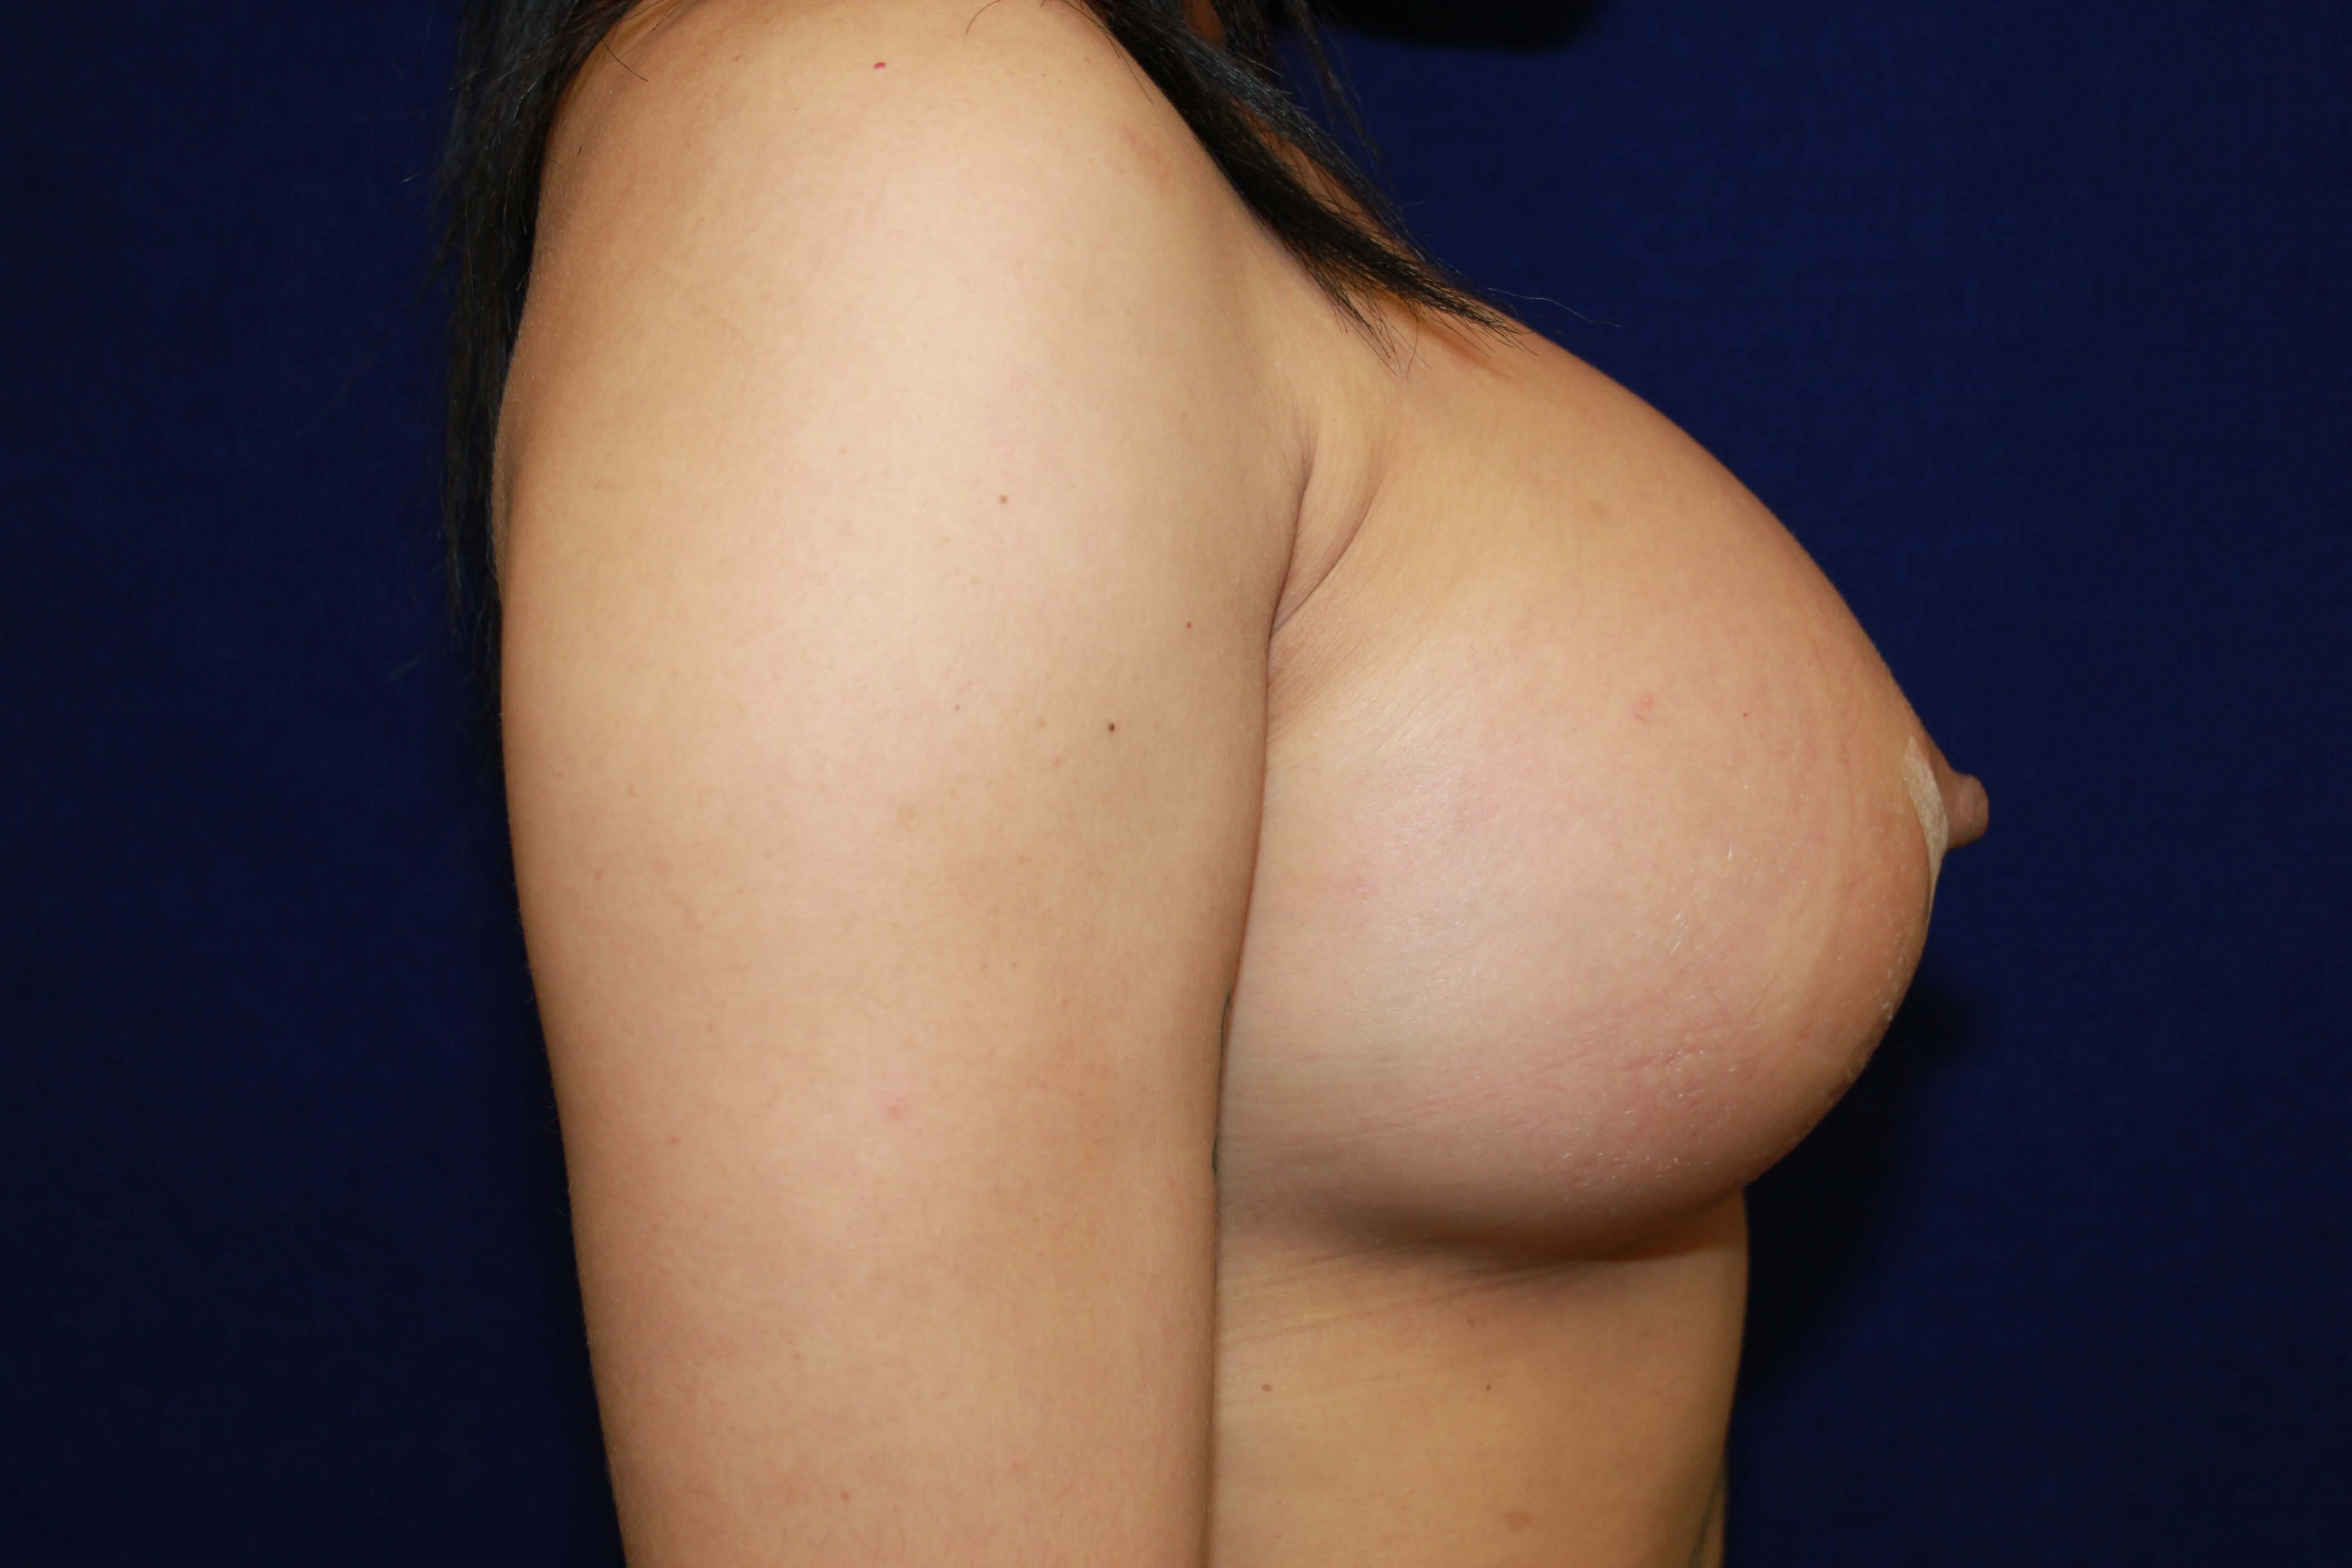 Silicone Gel SRX cc 700 Under After Breast Implants